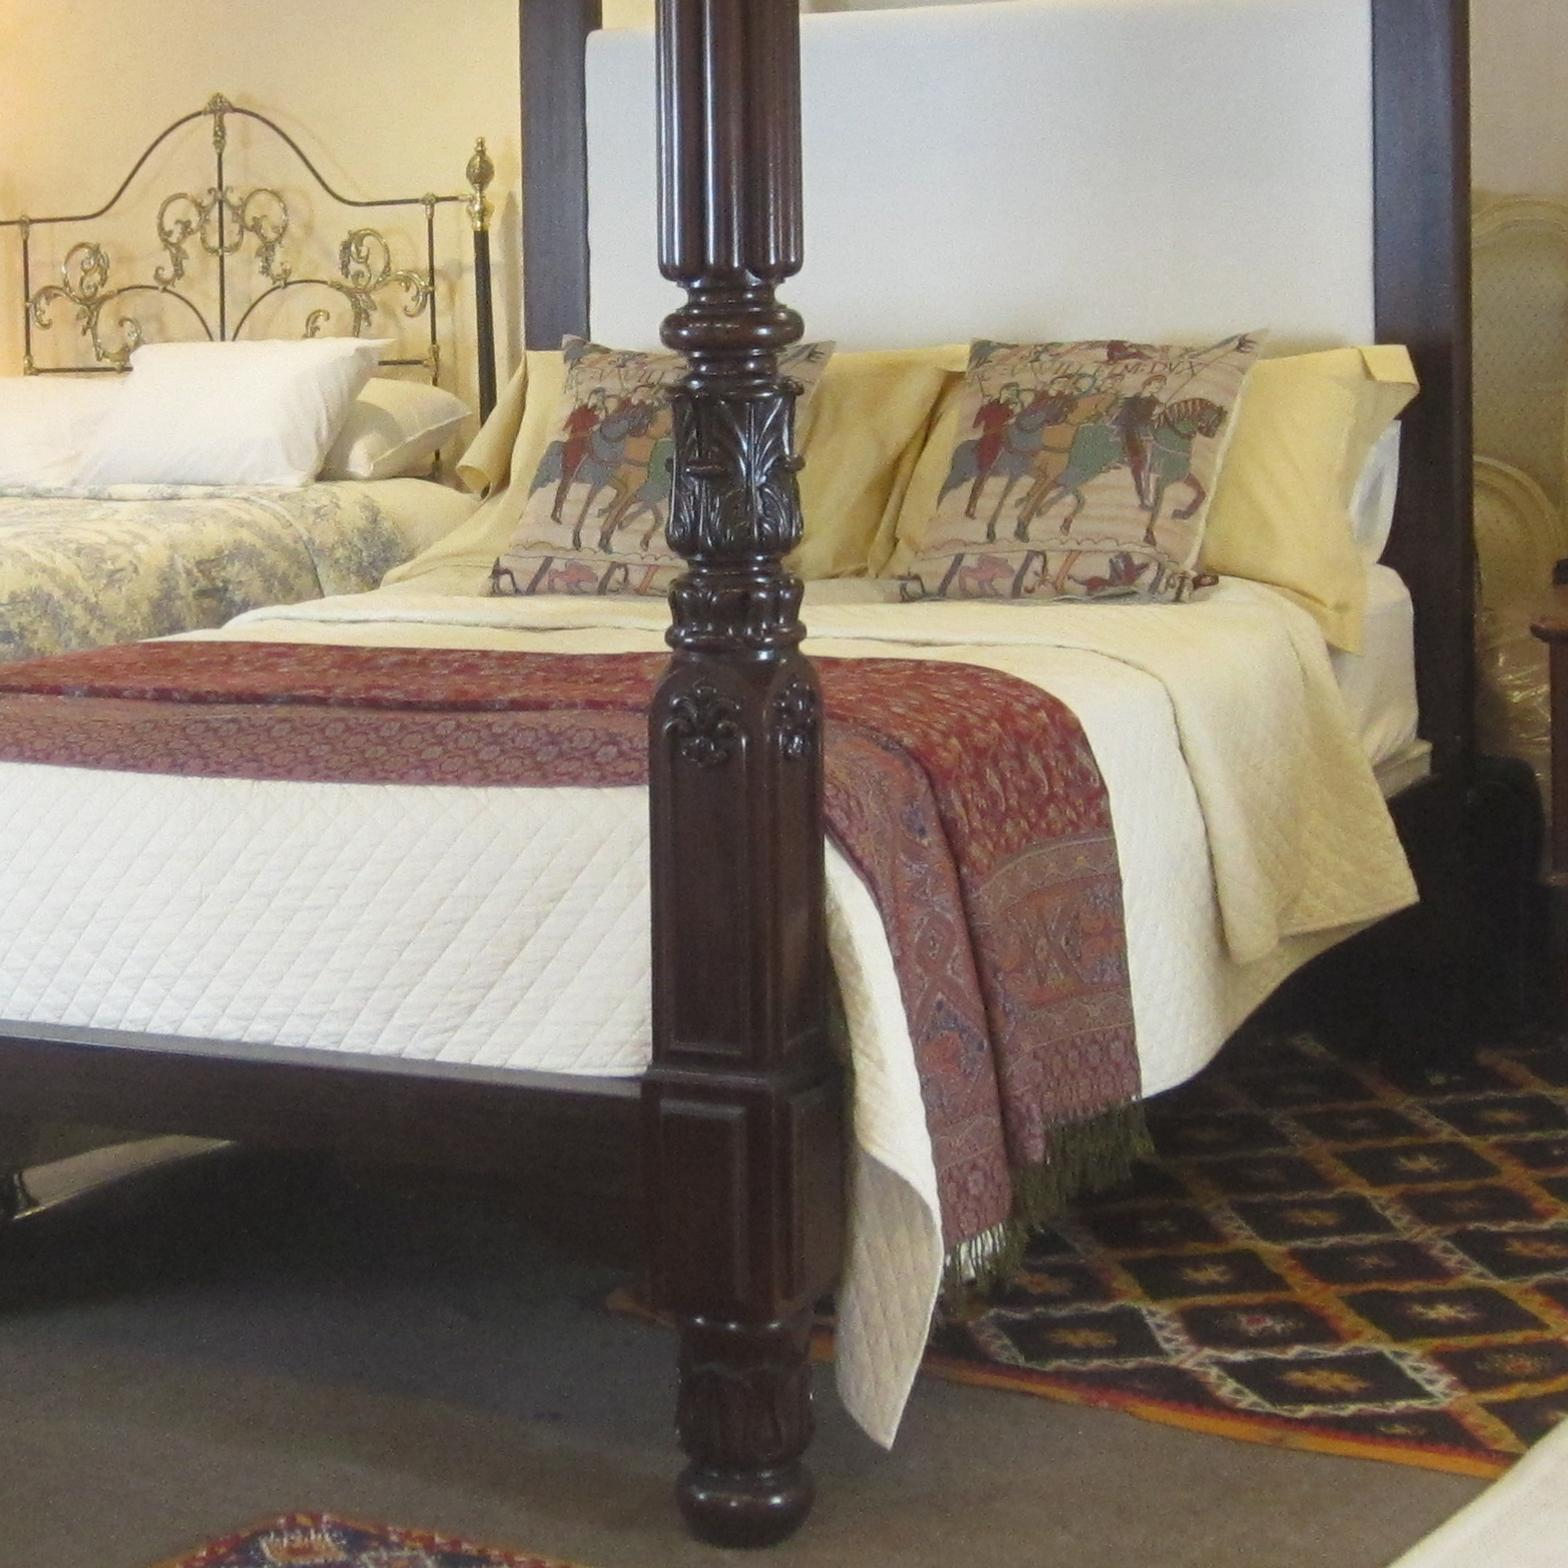 Mahogany Four Poster Bed From Seventh Heaven On Rubylux